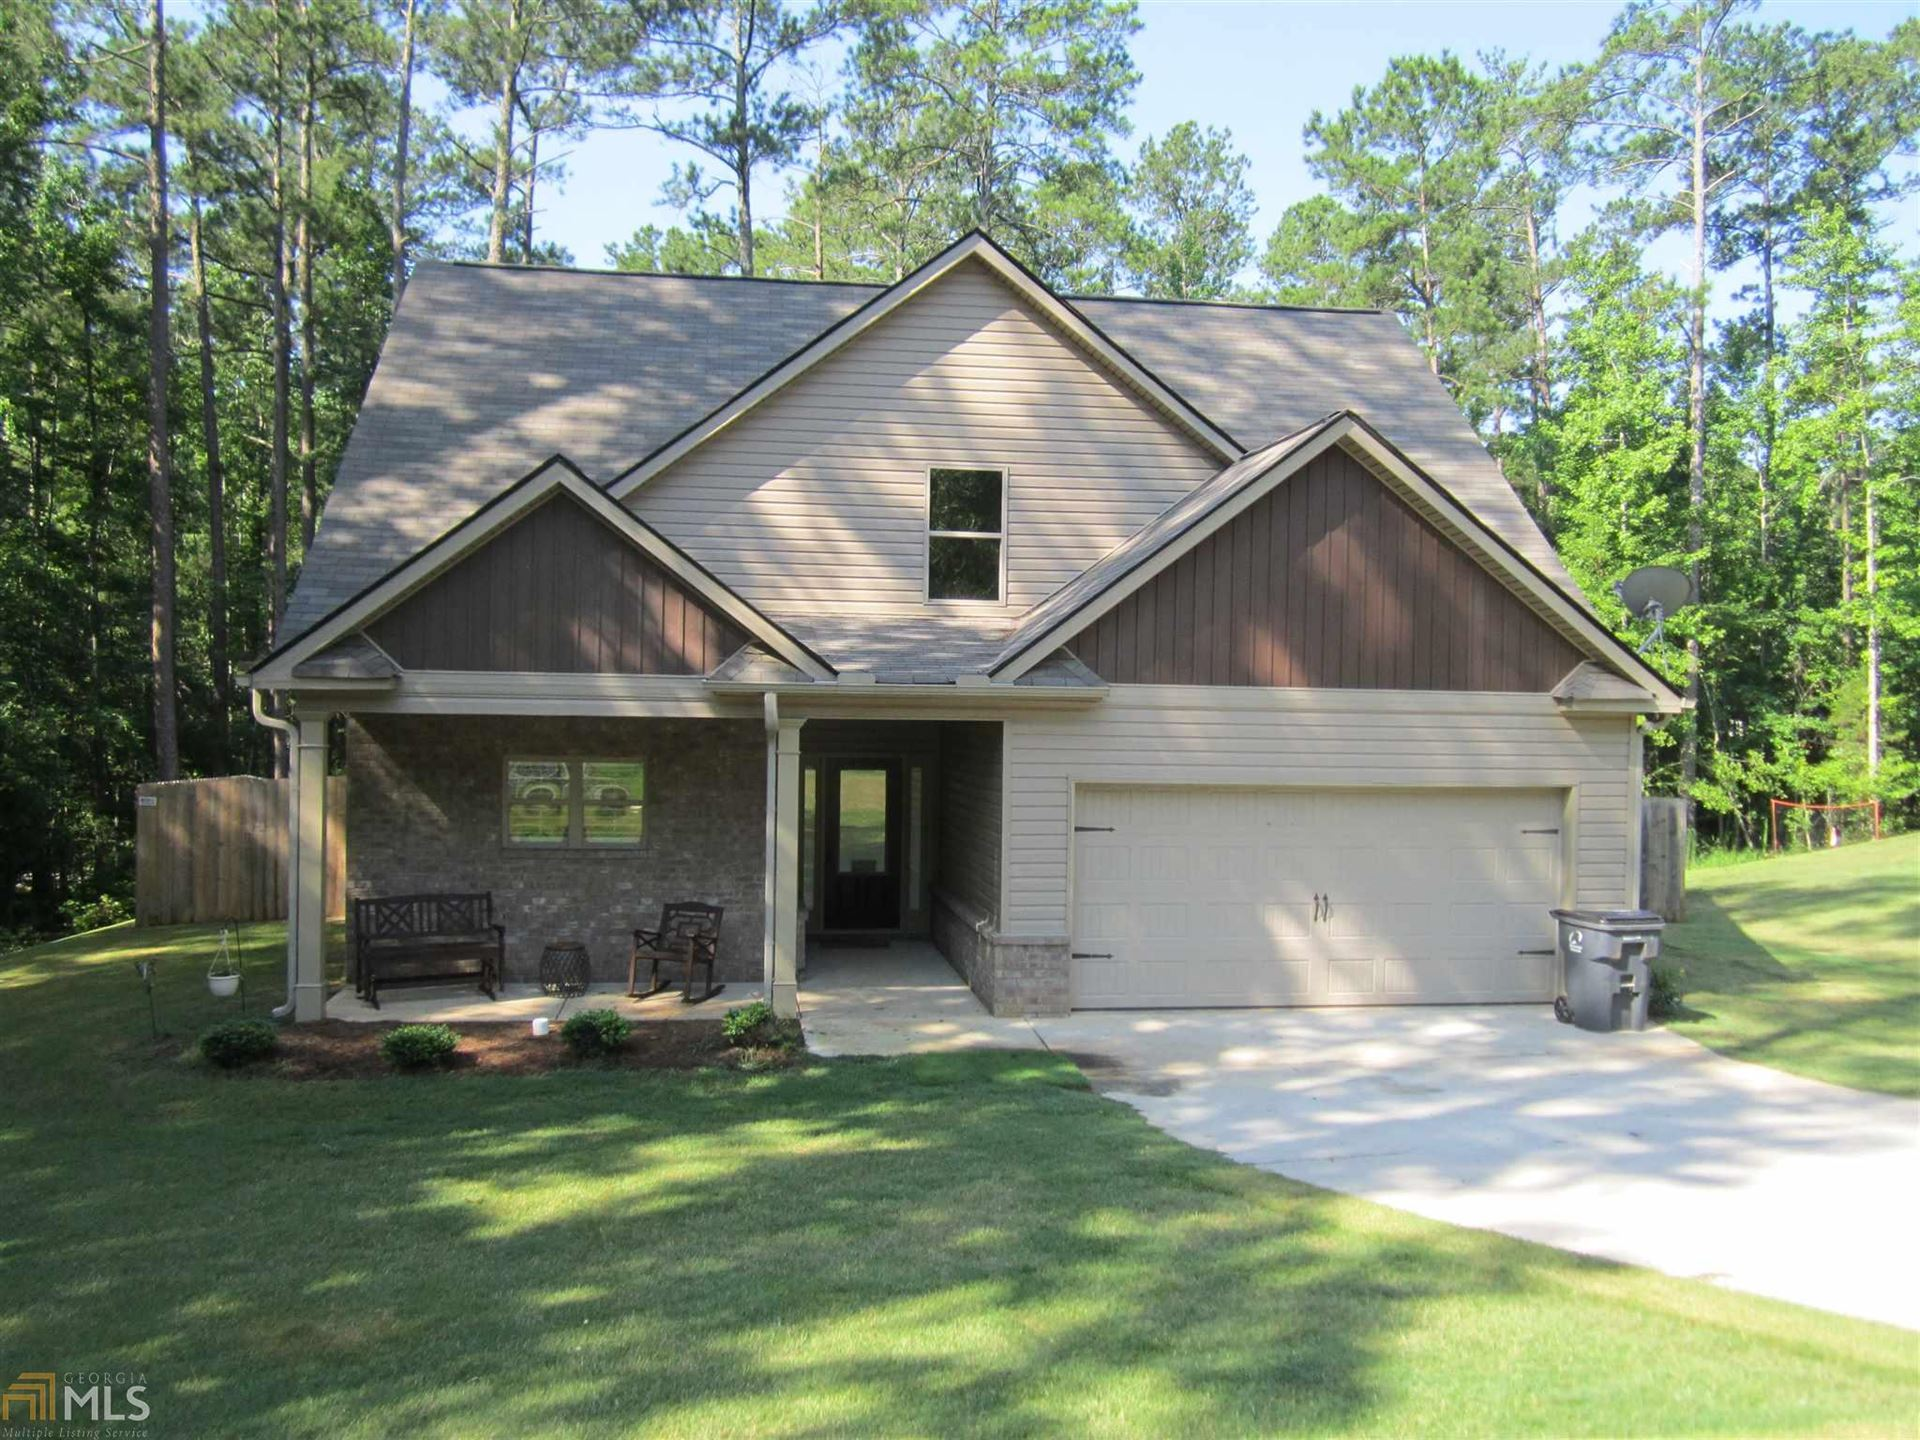 60 Grouse Ct, Monticello, GA 31064 - #: 8815441